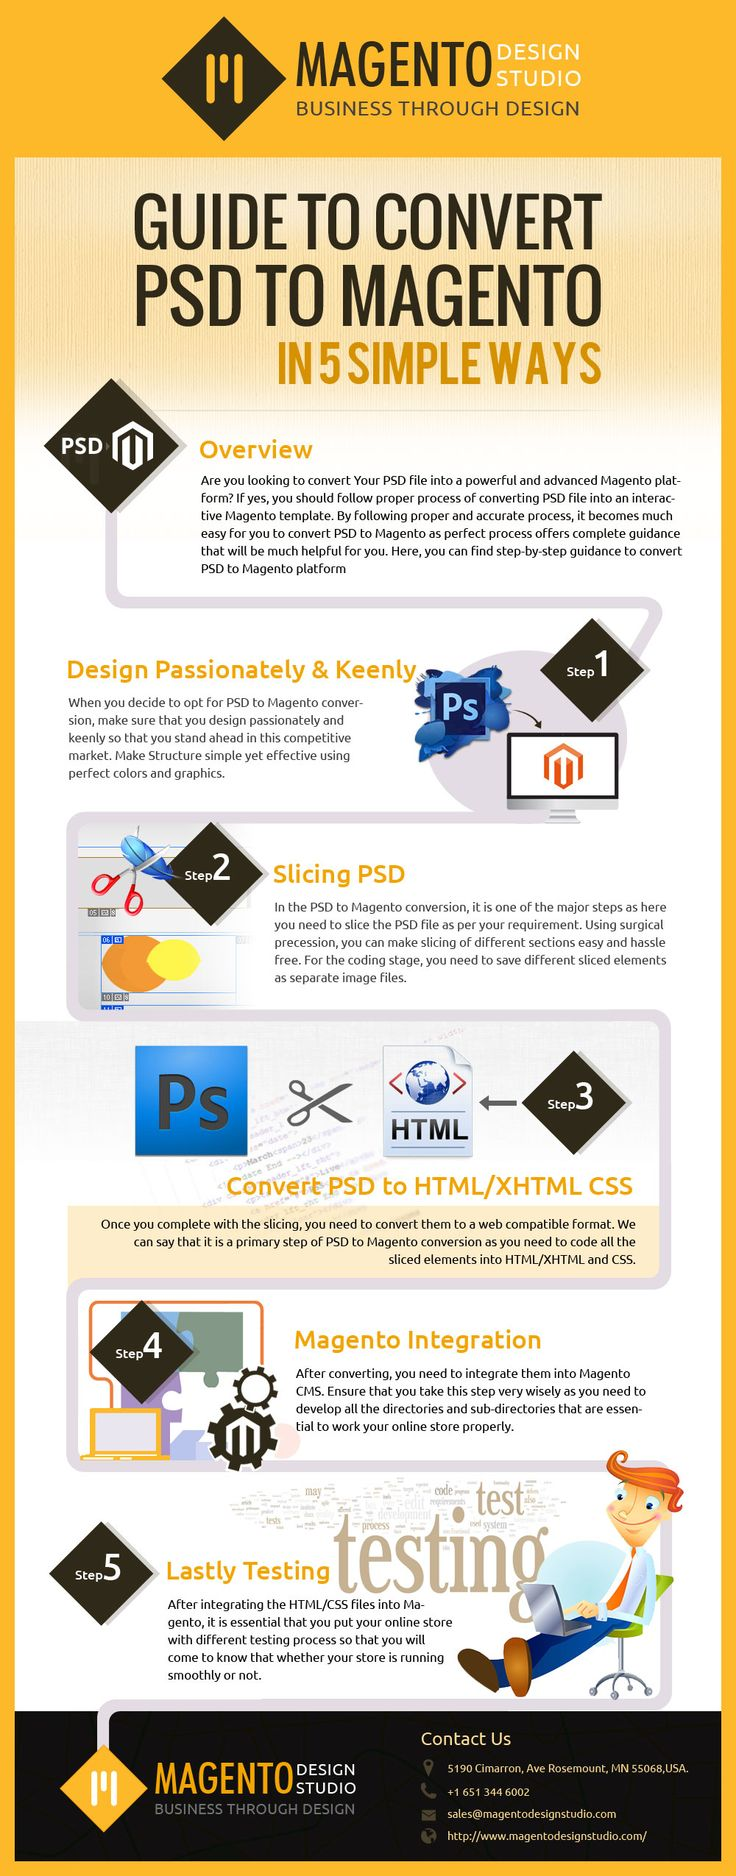 If you are looking to convert your PSD doc into a fully-featured Magento platform, this infographic can help you out as it contains step-by-step guide